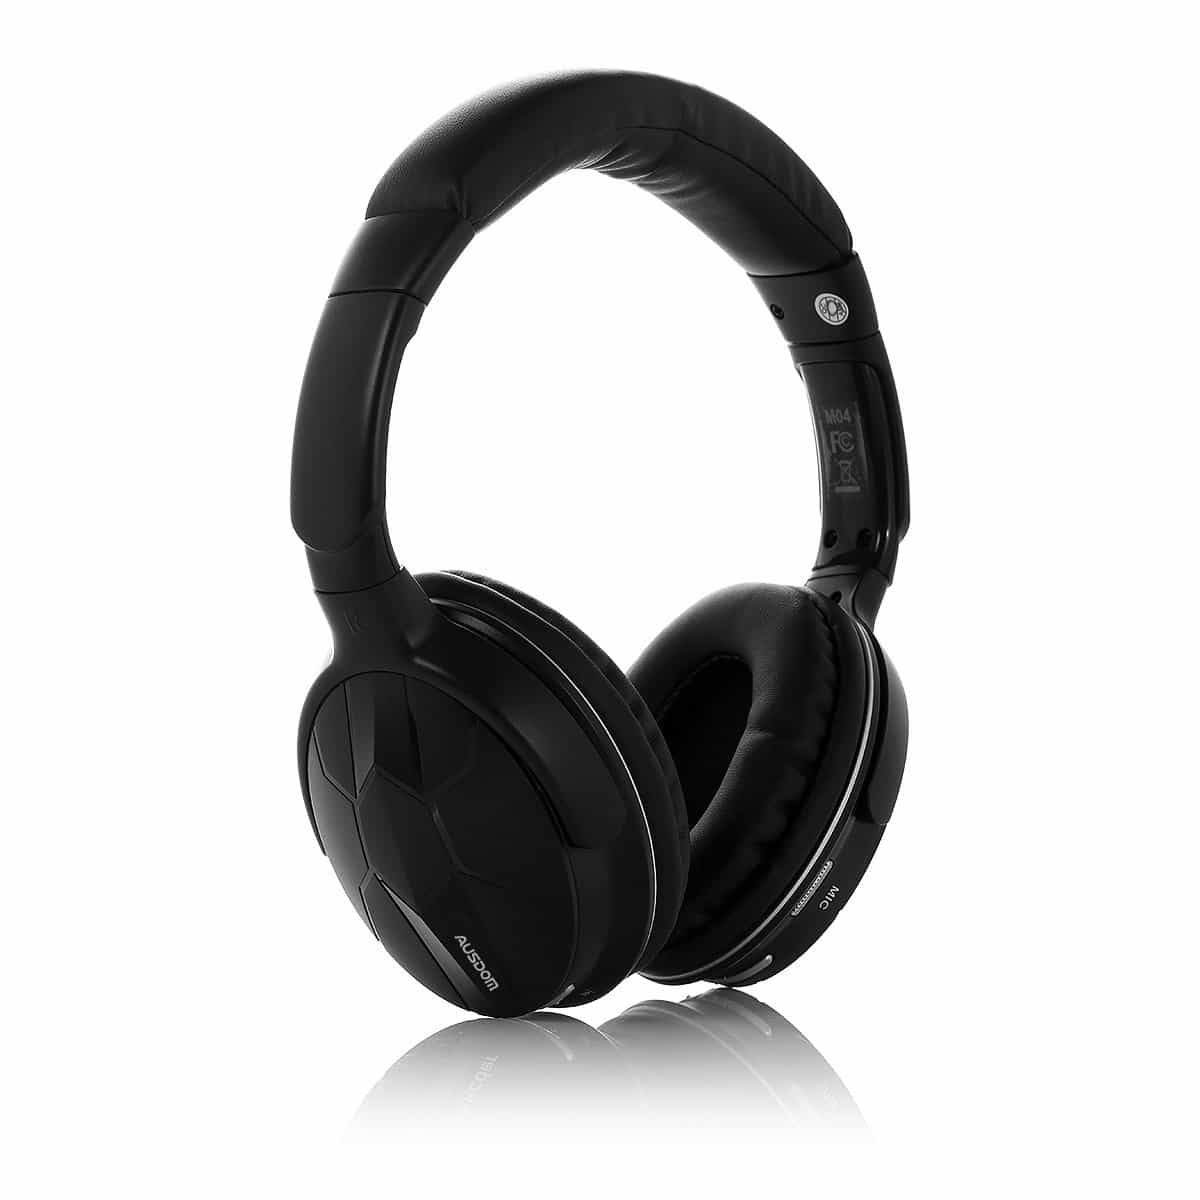 ausdom m04 bluetooth headphones review. Black Bedroom Furniture Sets. Home Design Ideas